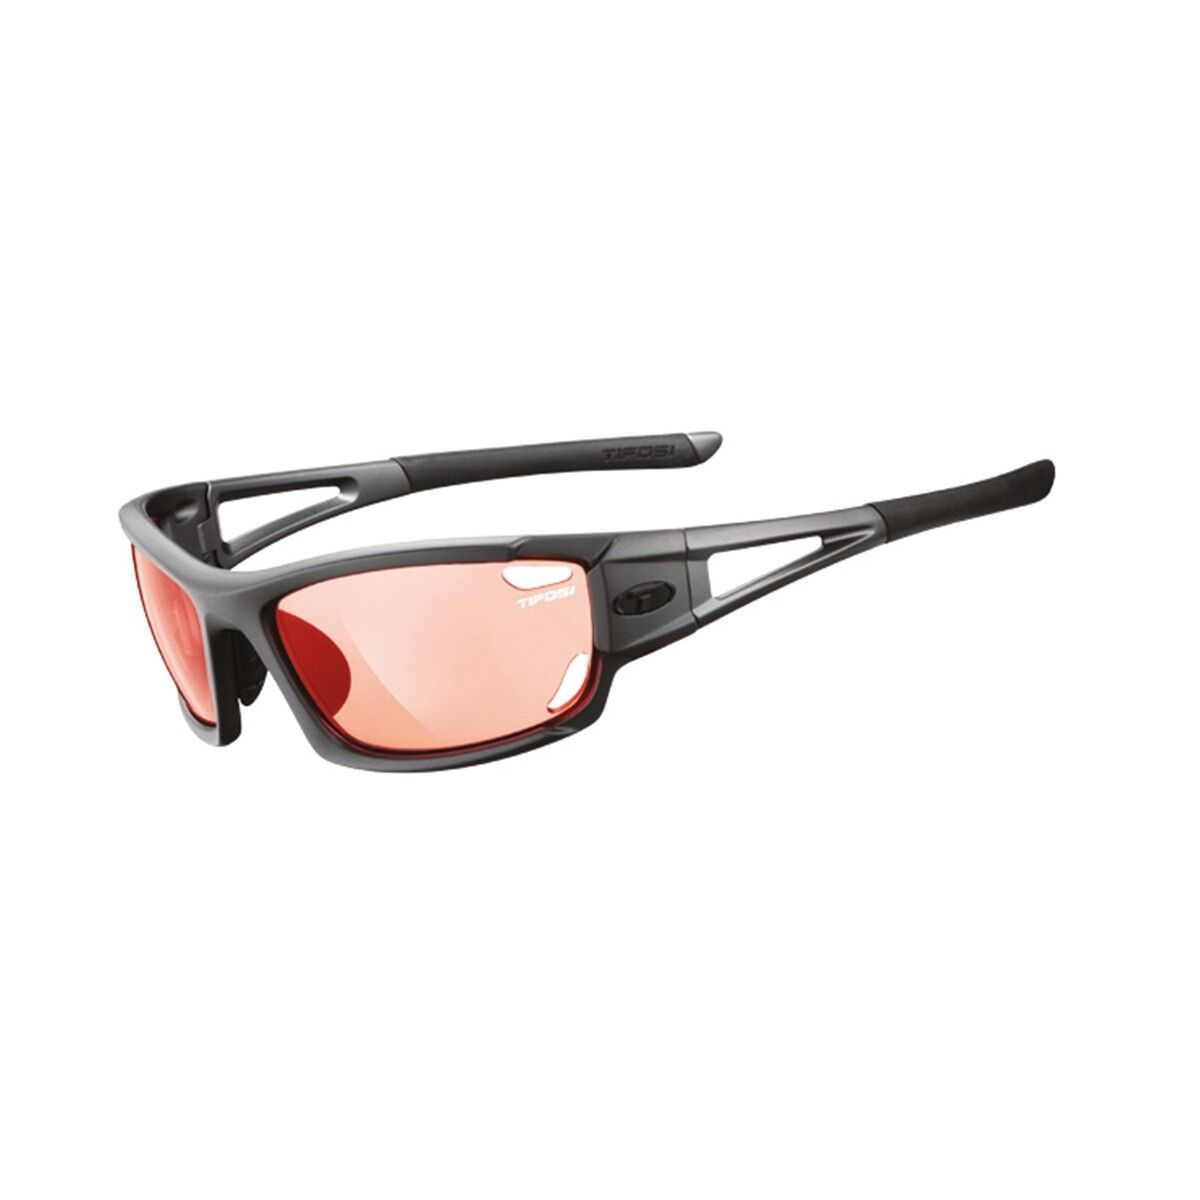 Tifosi Dolomite 2.0 Fototec Sunglasses   export outlet